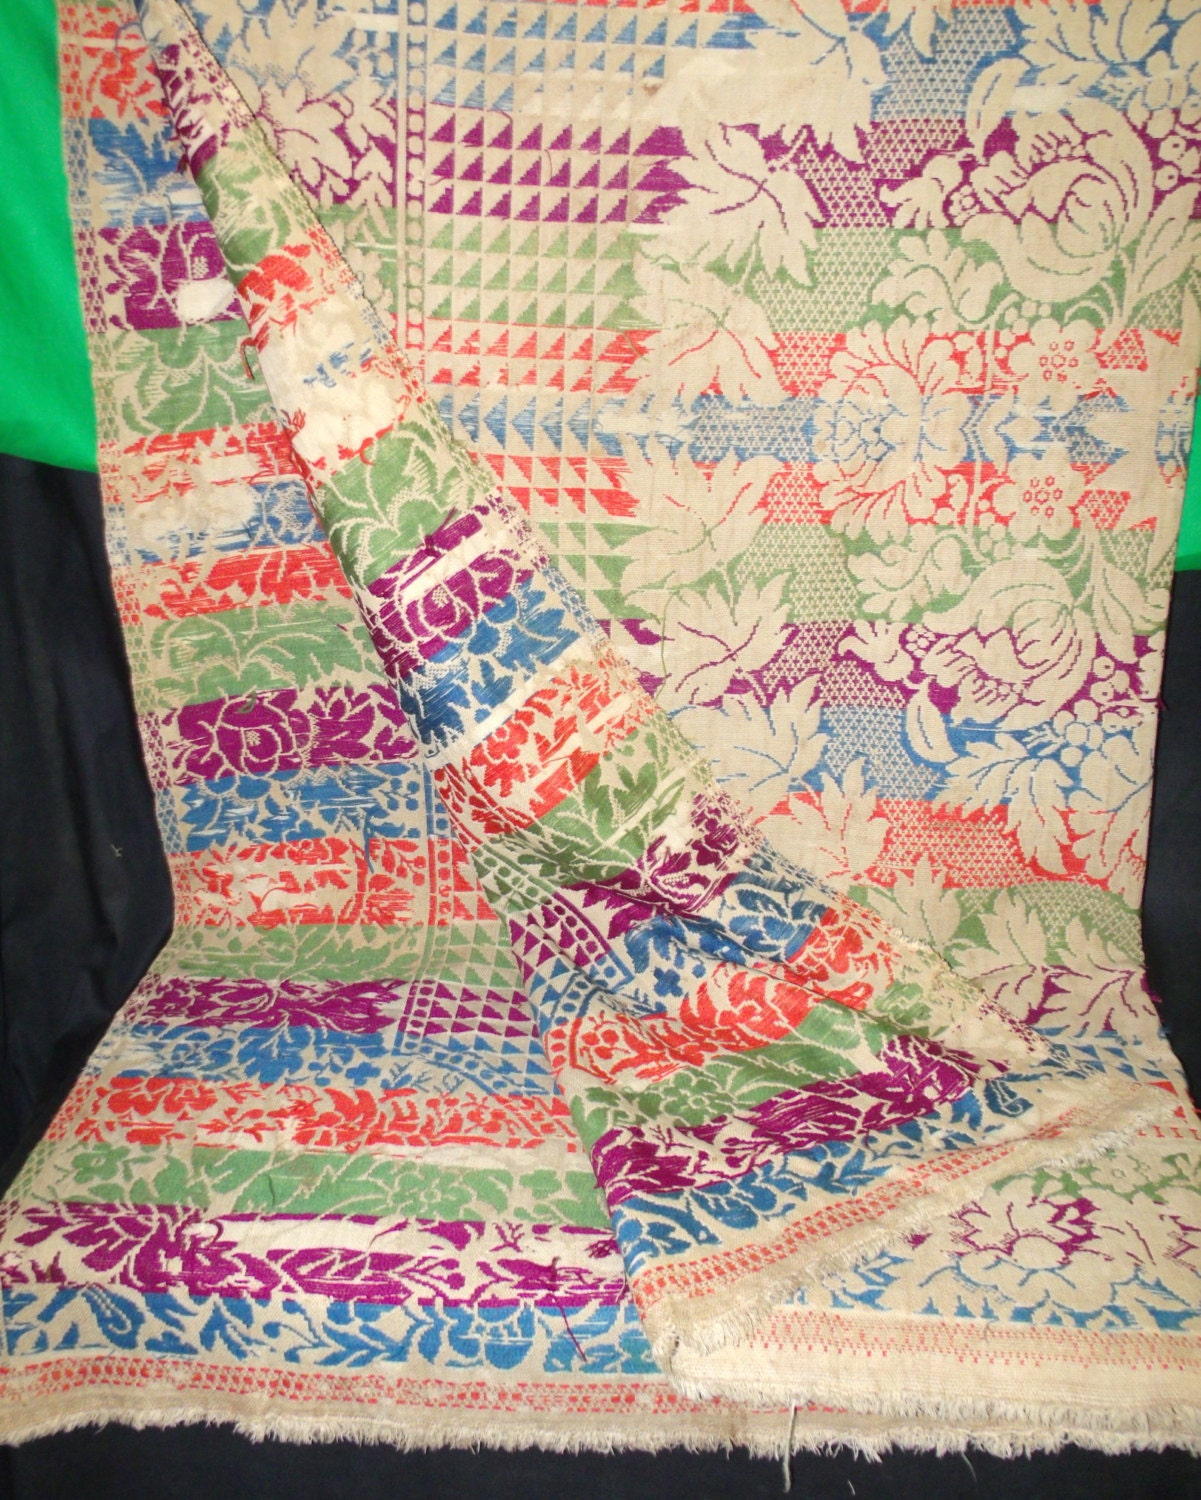 Large Antique Blanket Rug Textile Fabric By